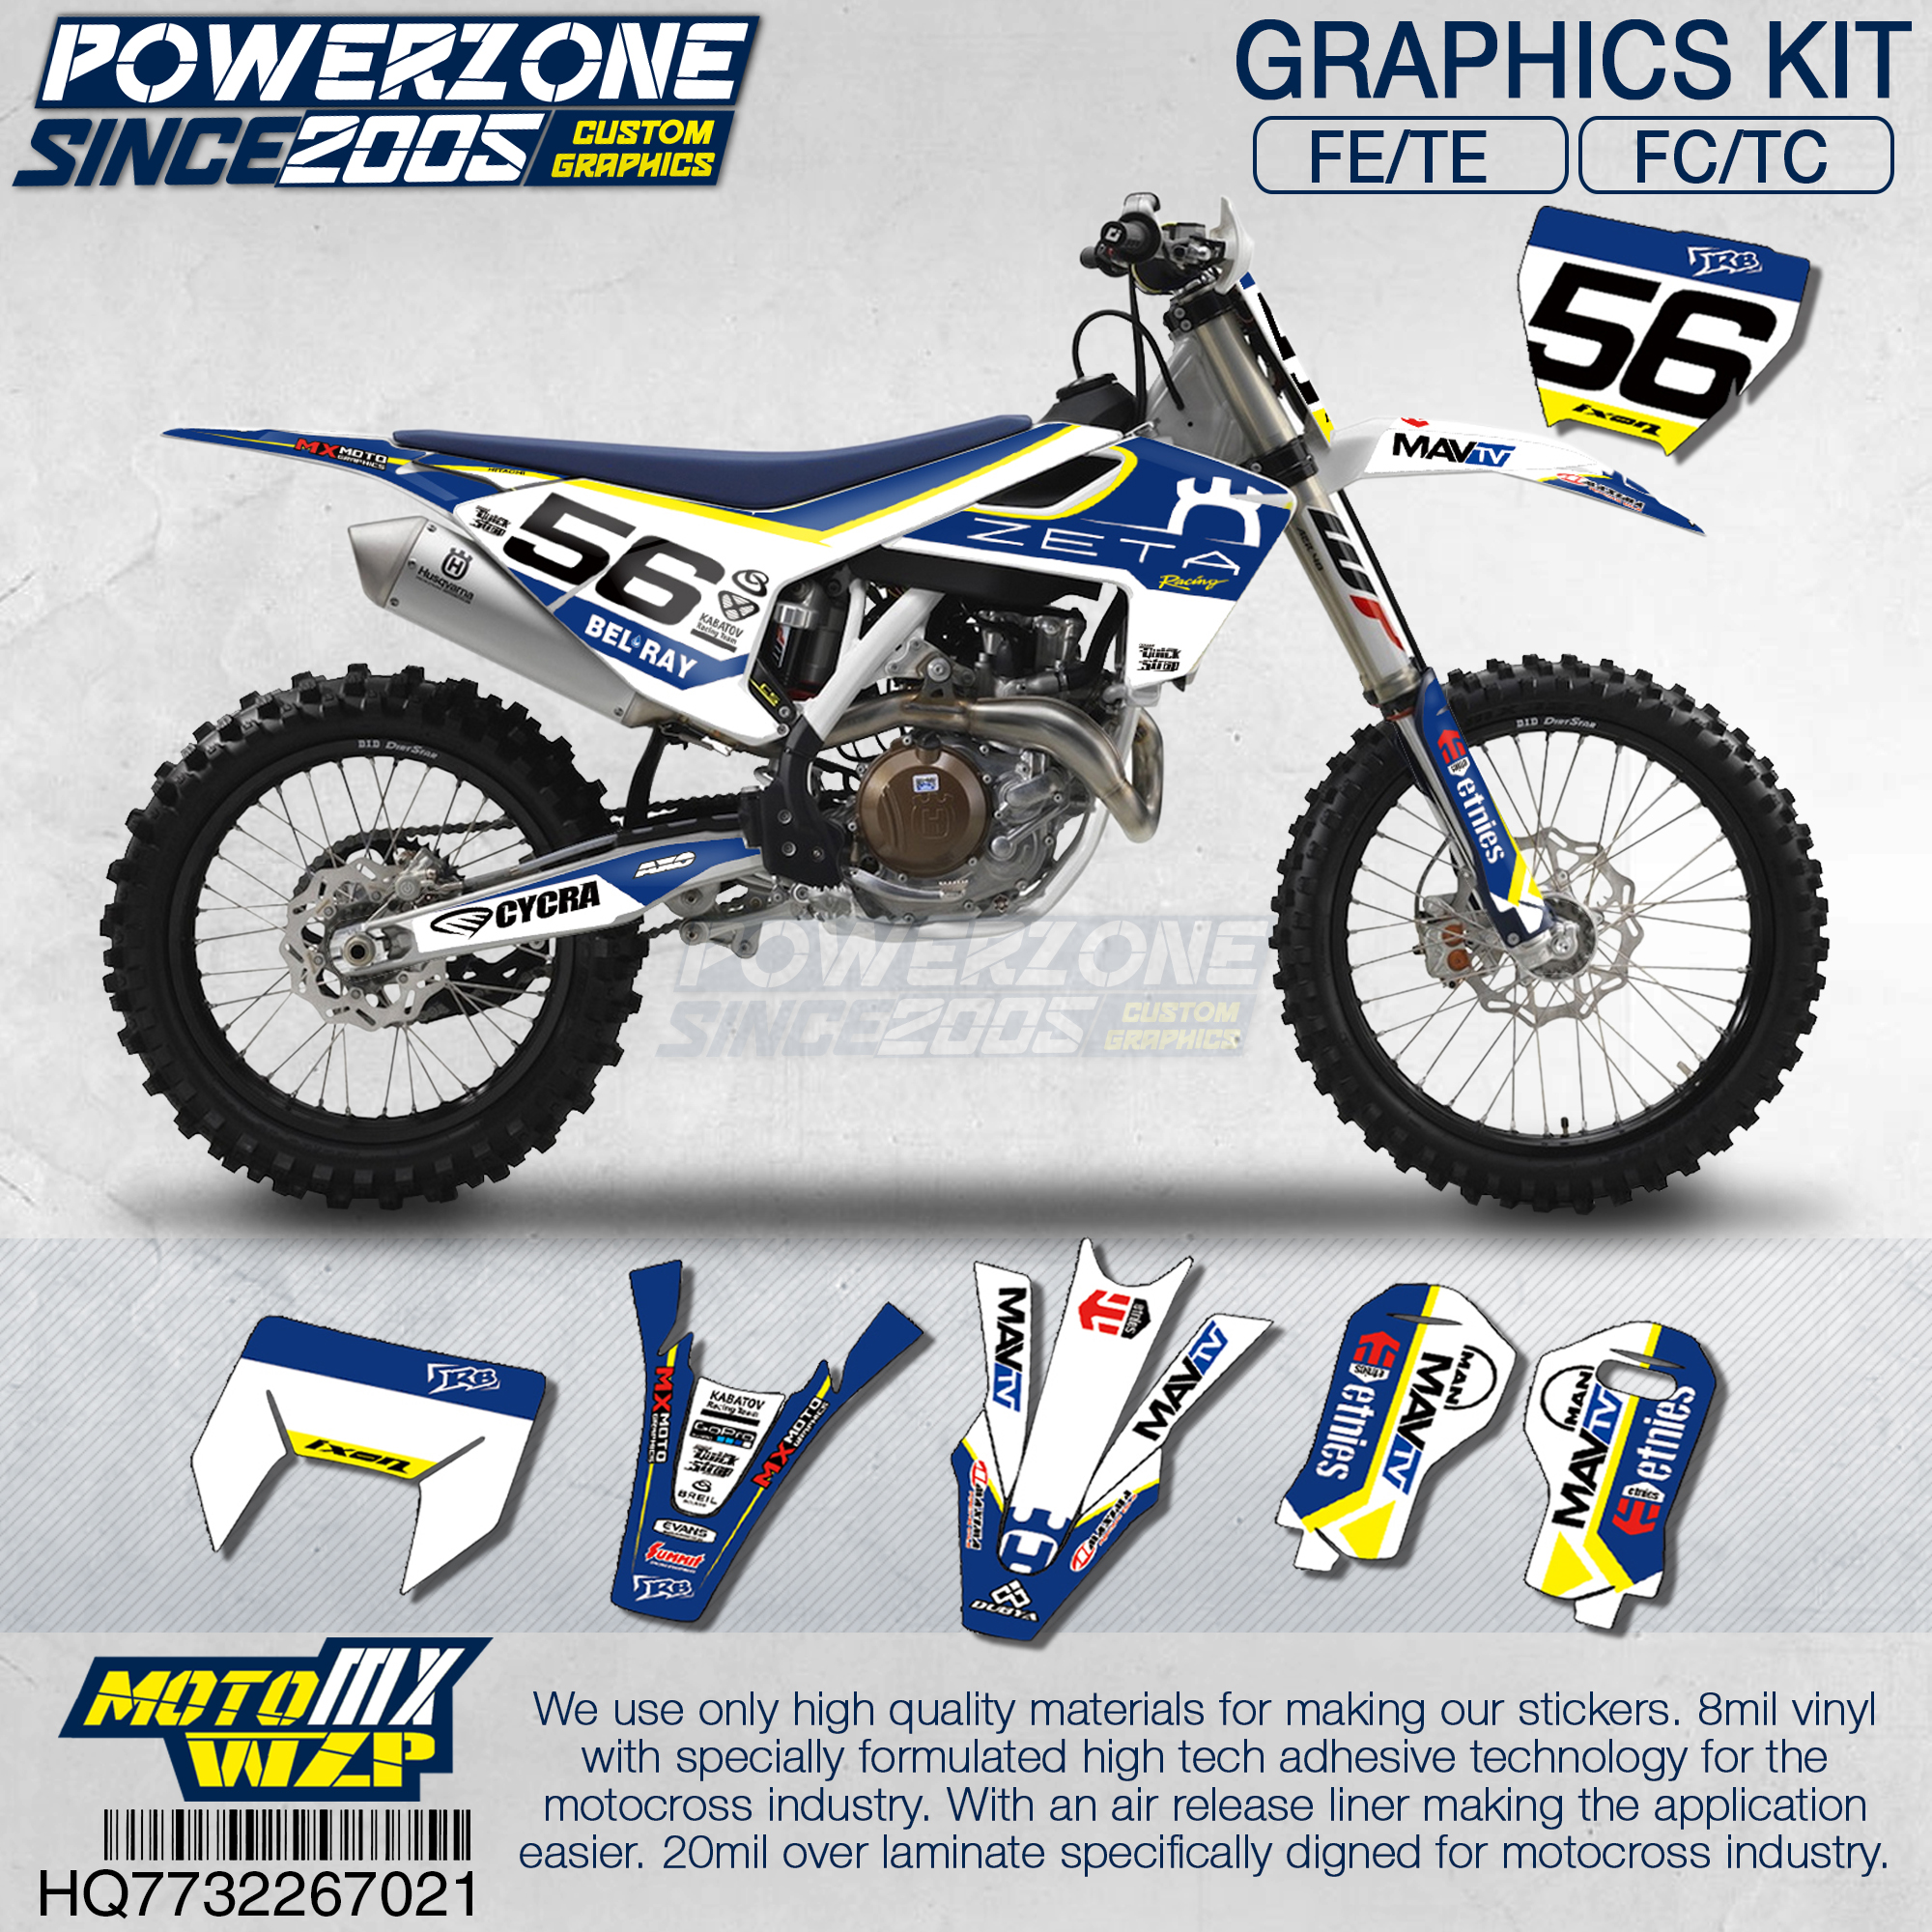 Customized Team Graphics Backgrounds 3M Decals Custom Stickers Kit For Husqvarna 2014 15 16 18 FE